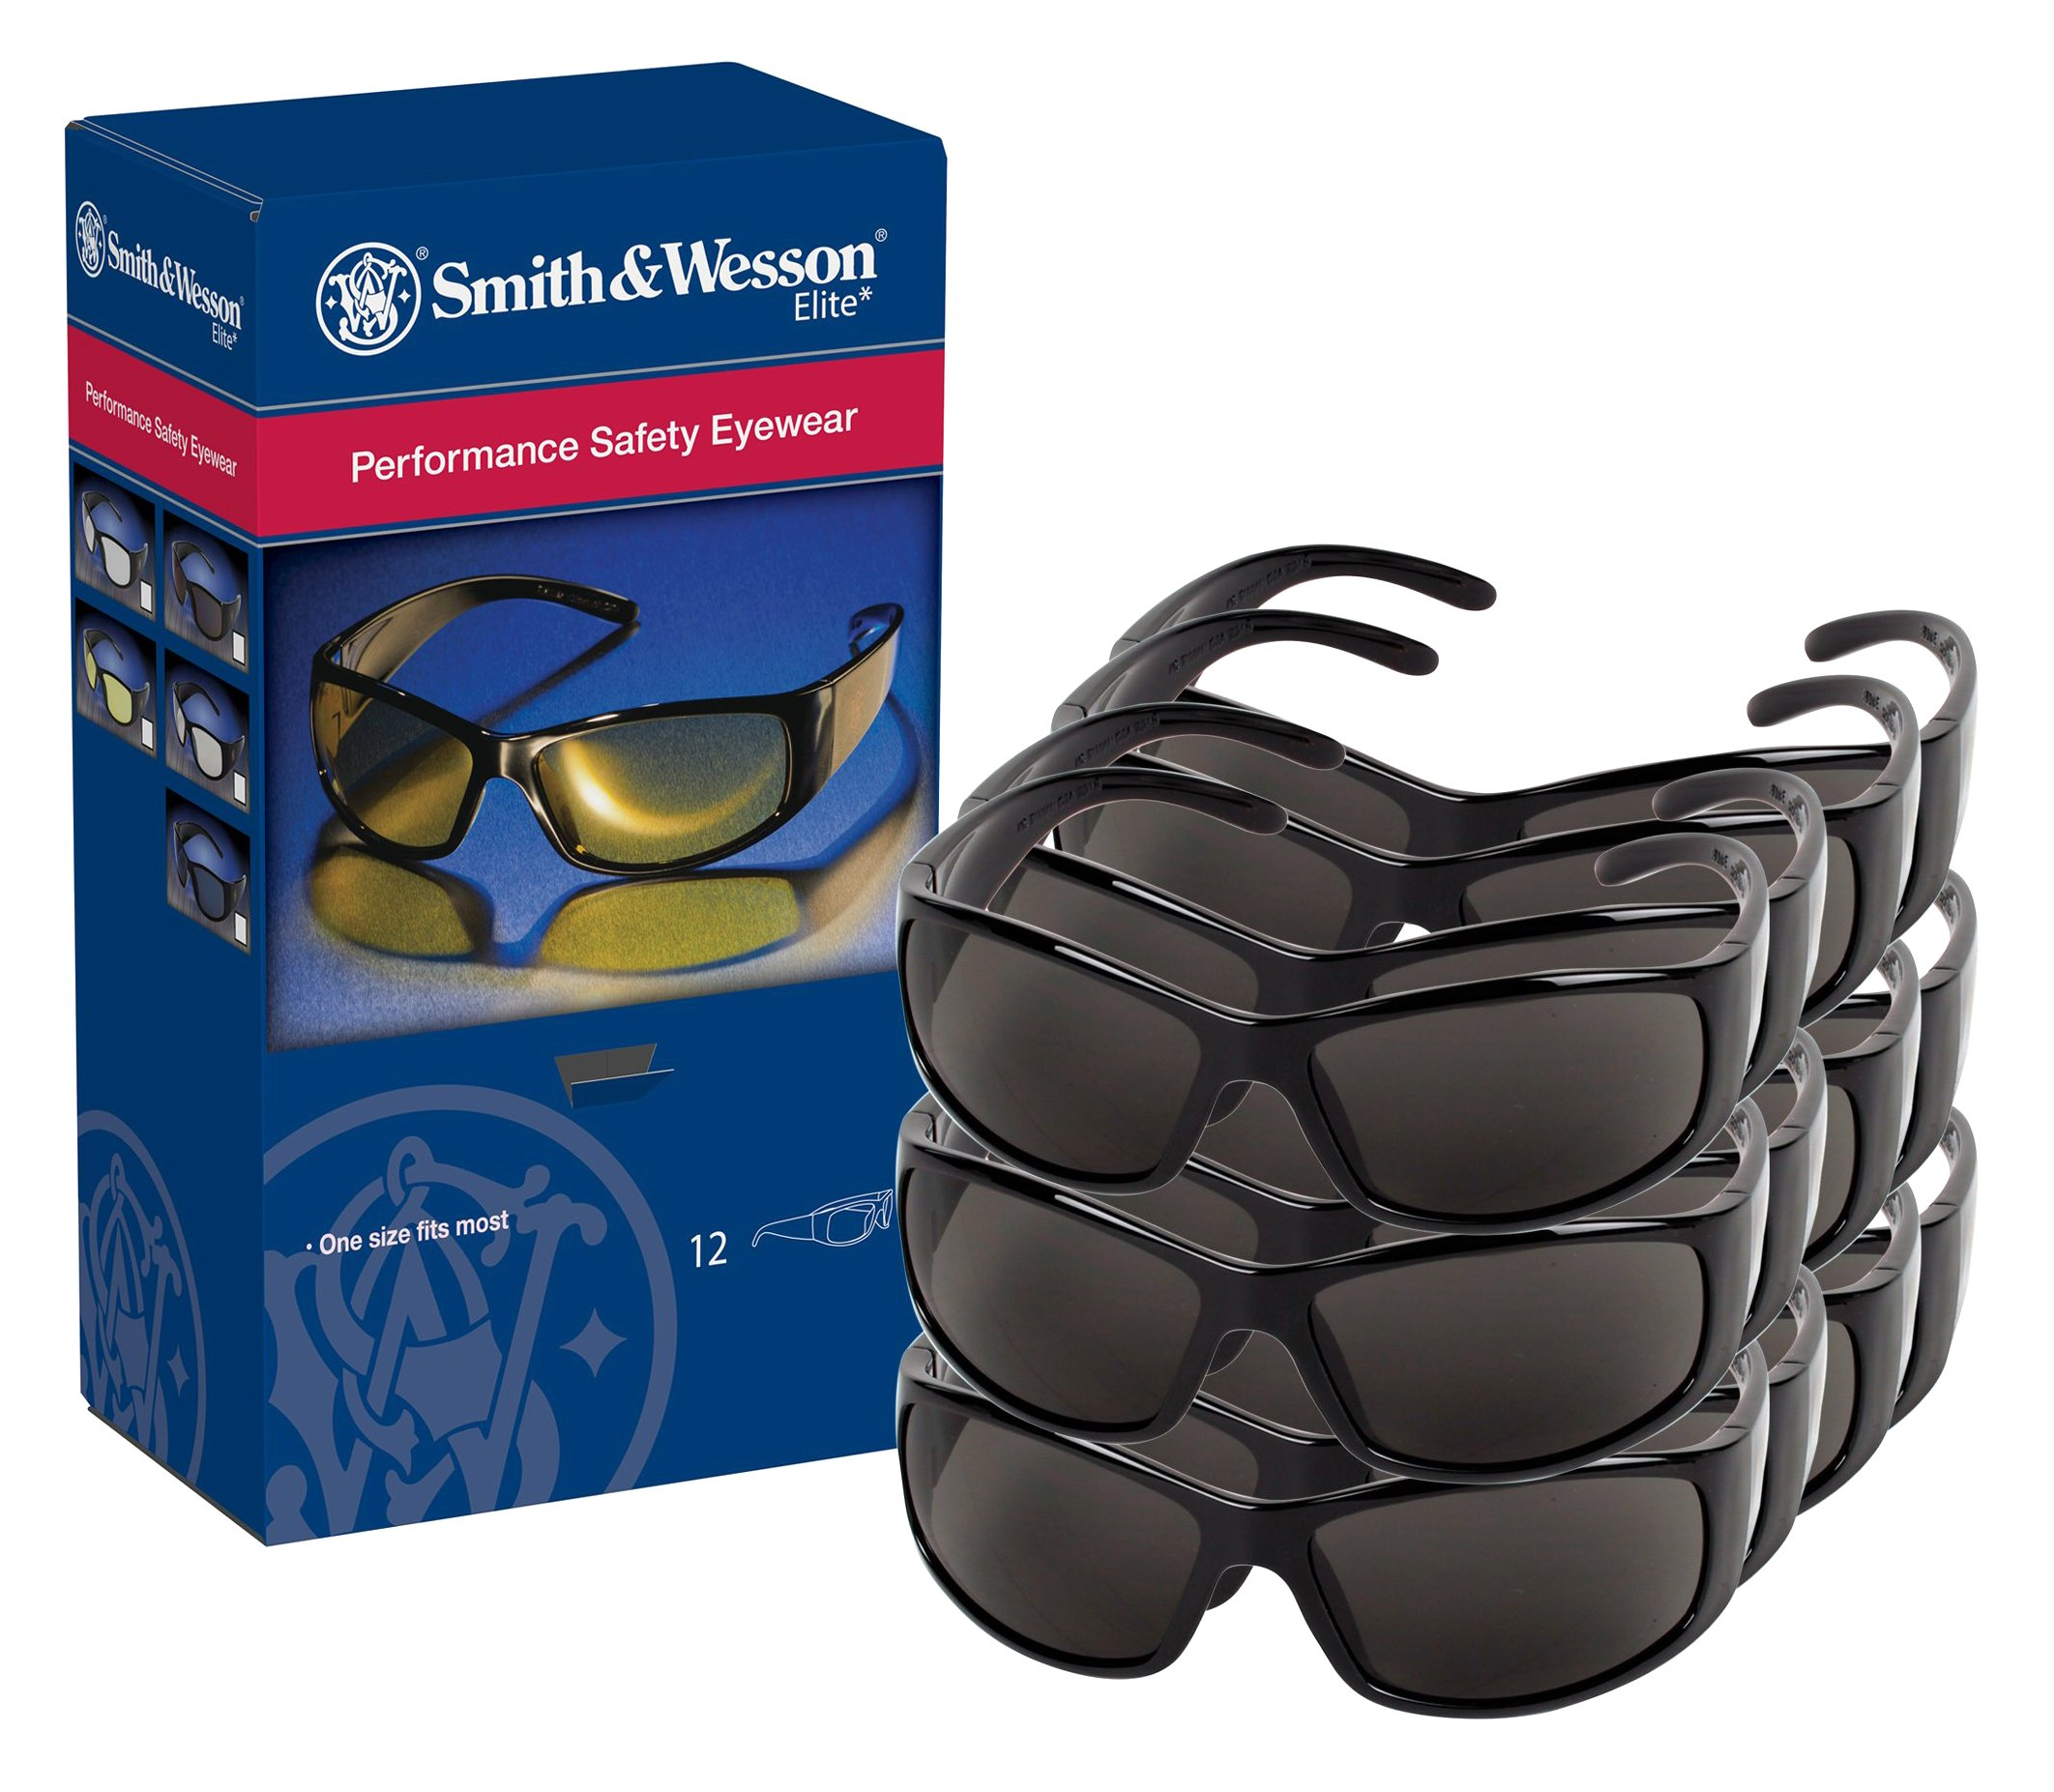 Smith and Wesson Safety Glasses (21303), Elite Safety Sunglasses, Smoke Anti-Fog Lenses with Black Frame, 12 Pairs / Case by Jackson Safety (Image #5)